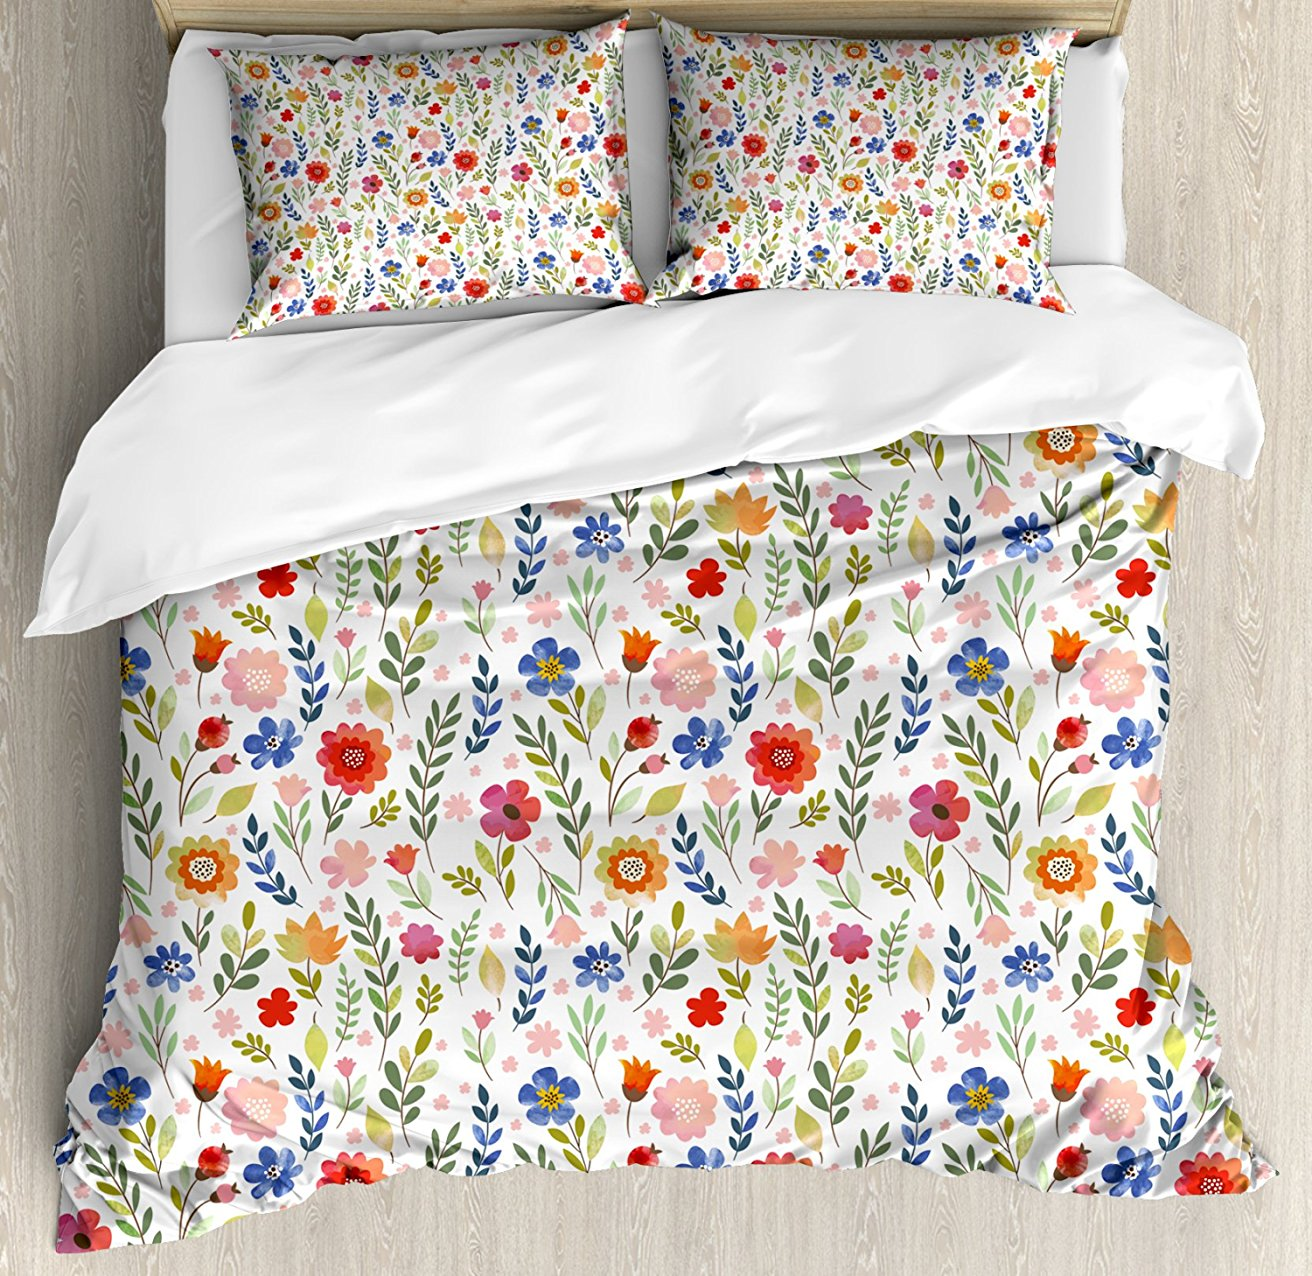 Patterned Duvet Cover Us 116 24 25 Off Watercolor Duvet Cover Set Floral Patterned Illustration With Leaves And Wildflowers Abstract Botanical 4 Piece Bedding Set In